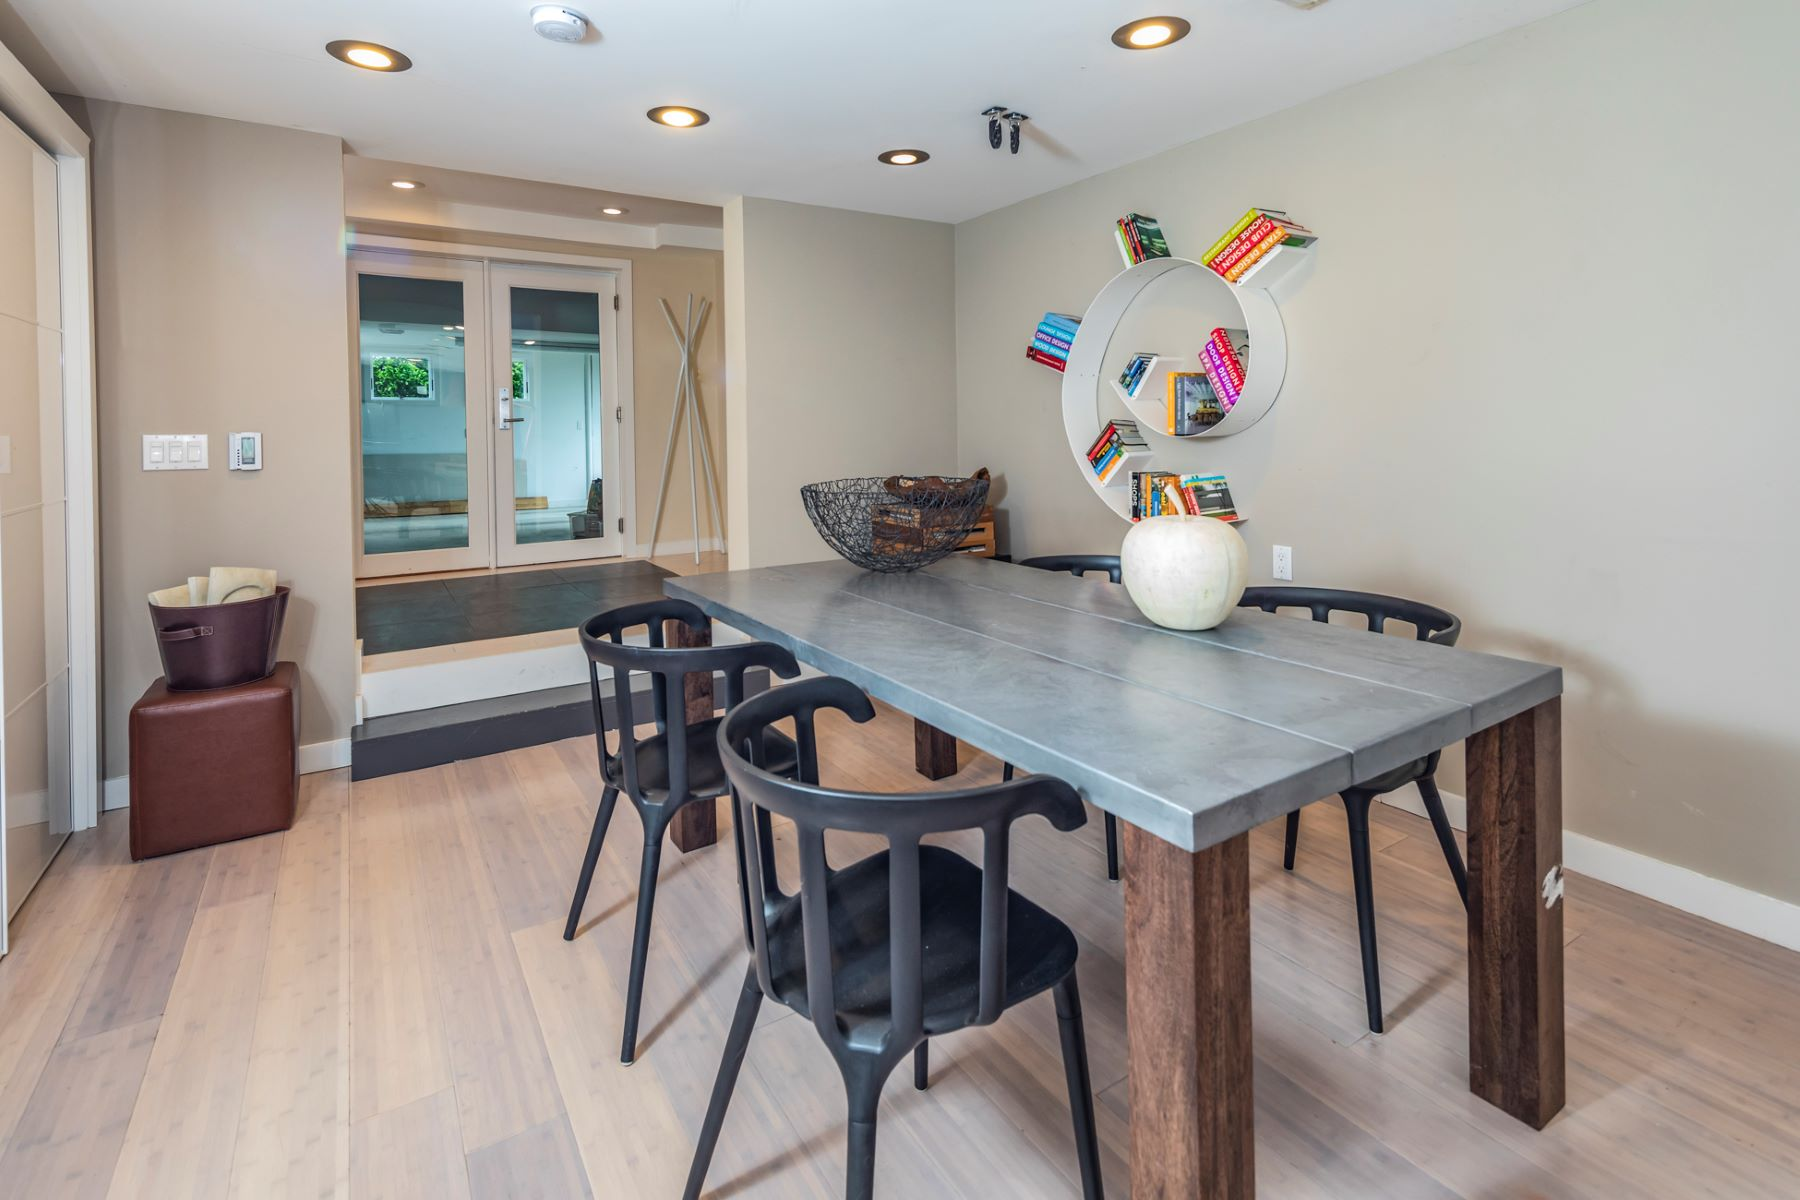 Additional photo for property listing at A Sleek Western Section Mid-Century Modern Home 138 Westcott Road, Princeton, New Jersey 08540 United States